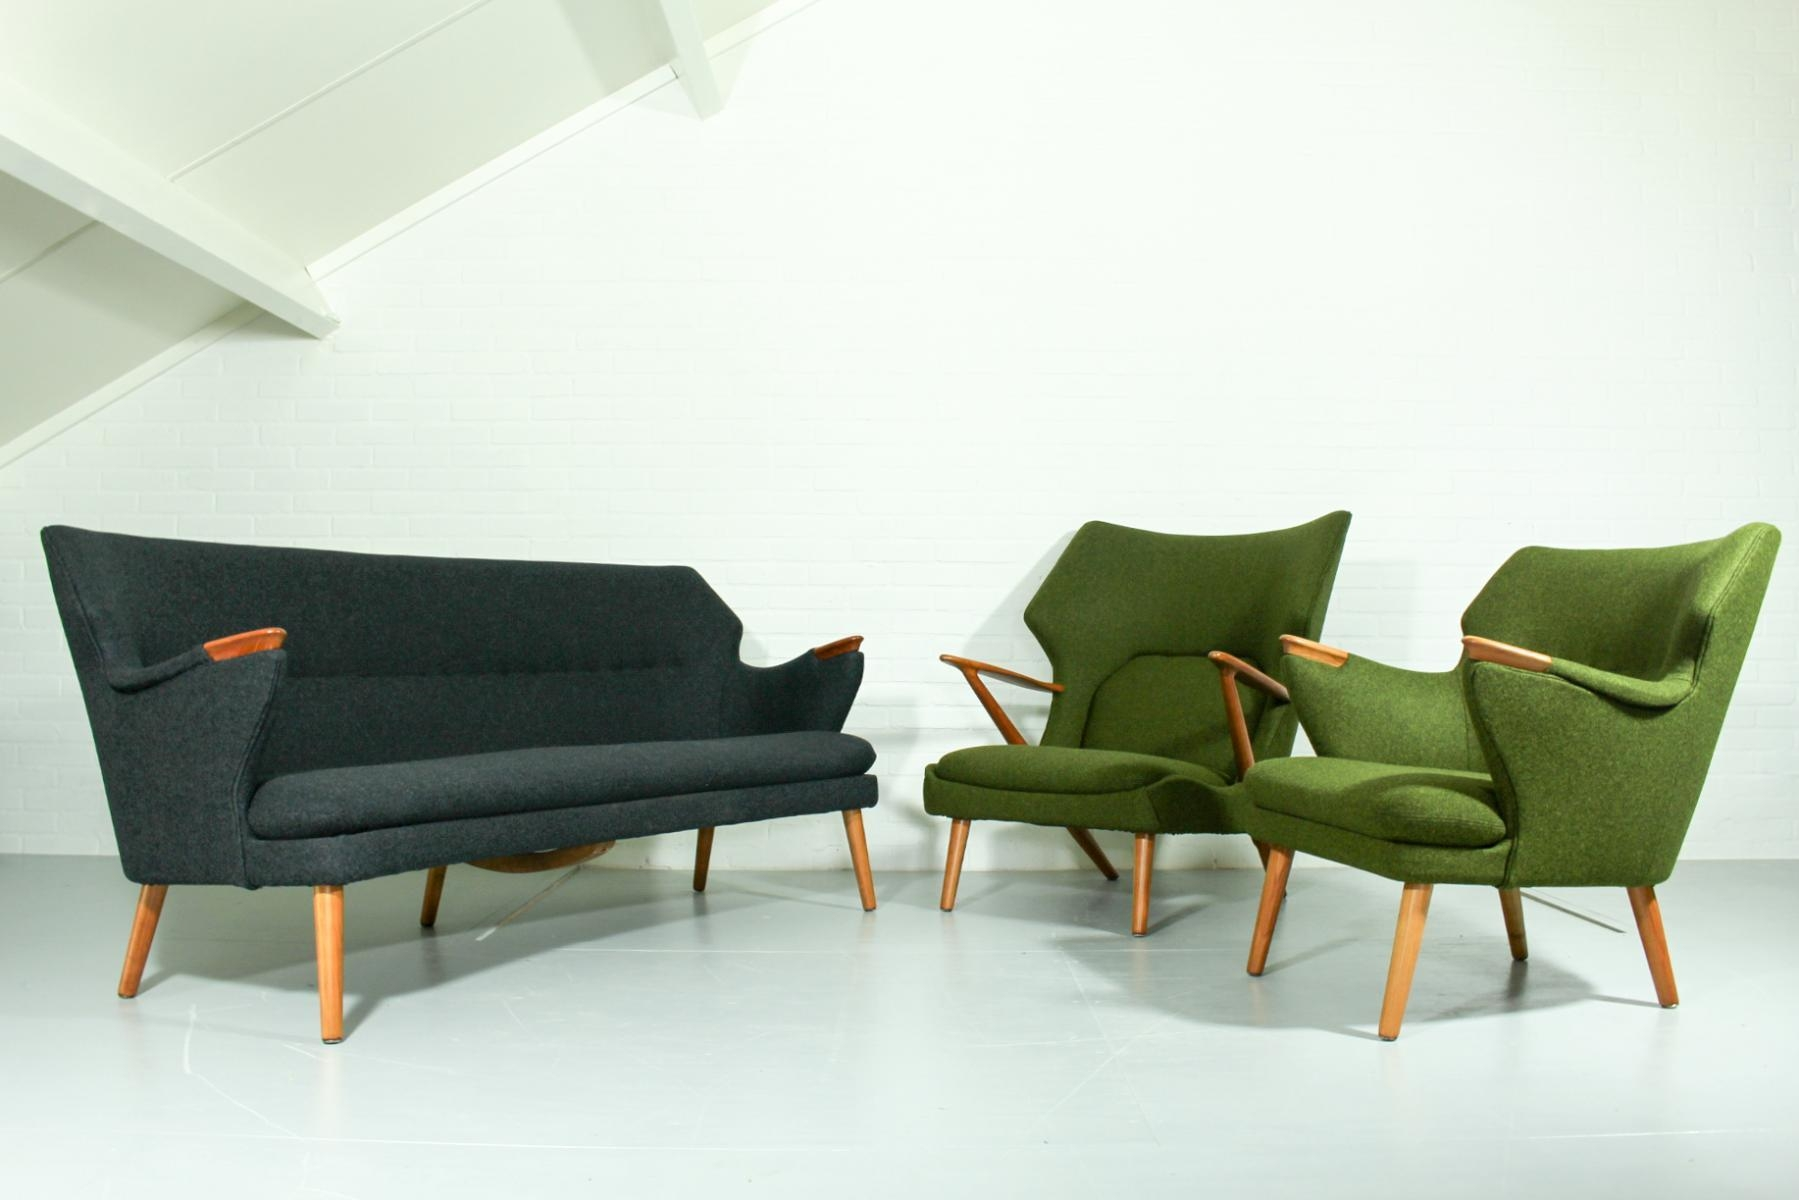 Mid Century Sofa, Chairs, And Table Lounge Set For Sale At Pamono Throughout Sofa Chairs (View 20 of 20)